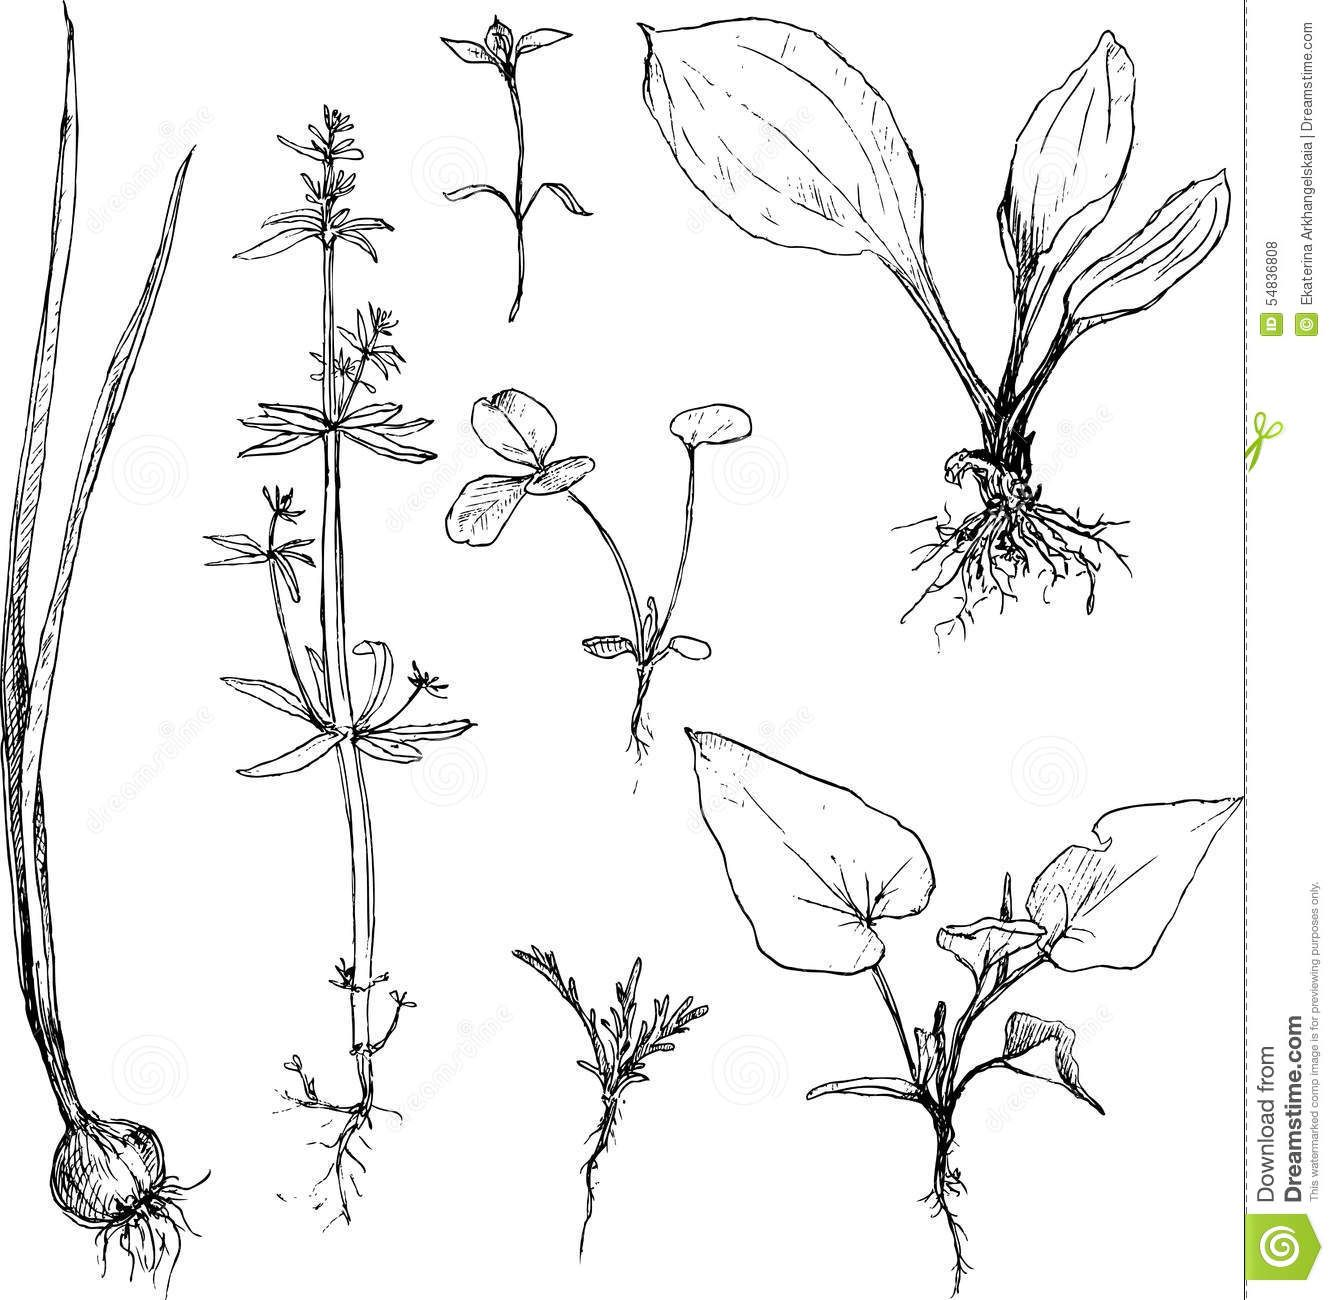 Set of pencil drawing herbs and leaves download from over 37 million high quality stock